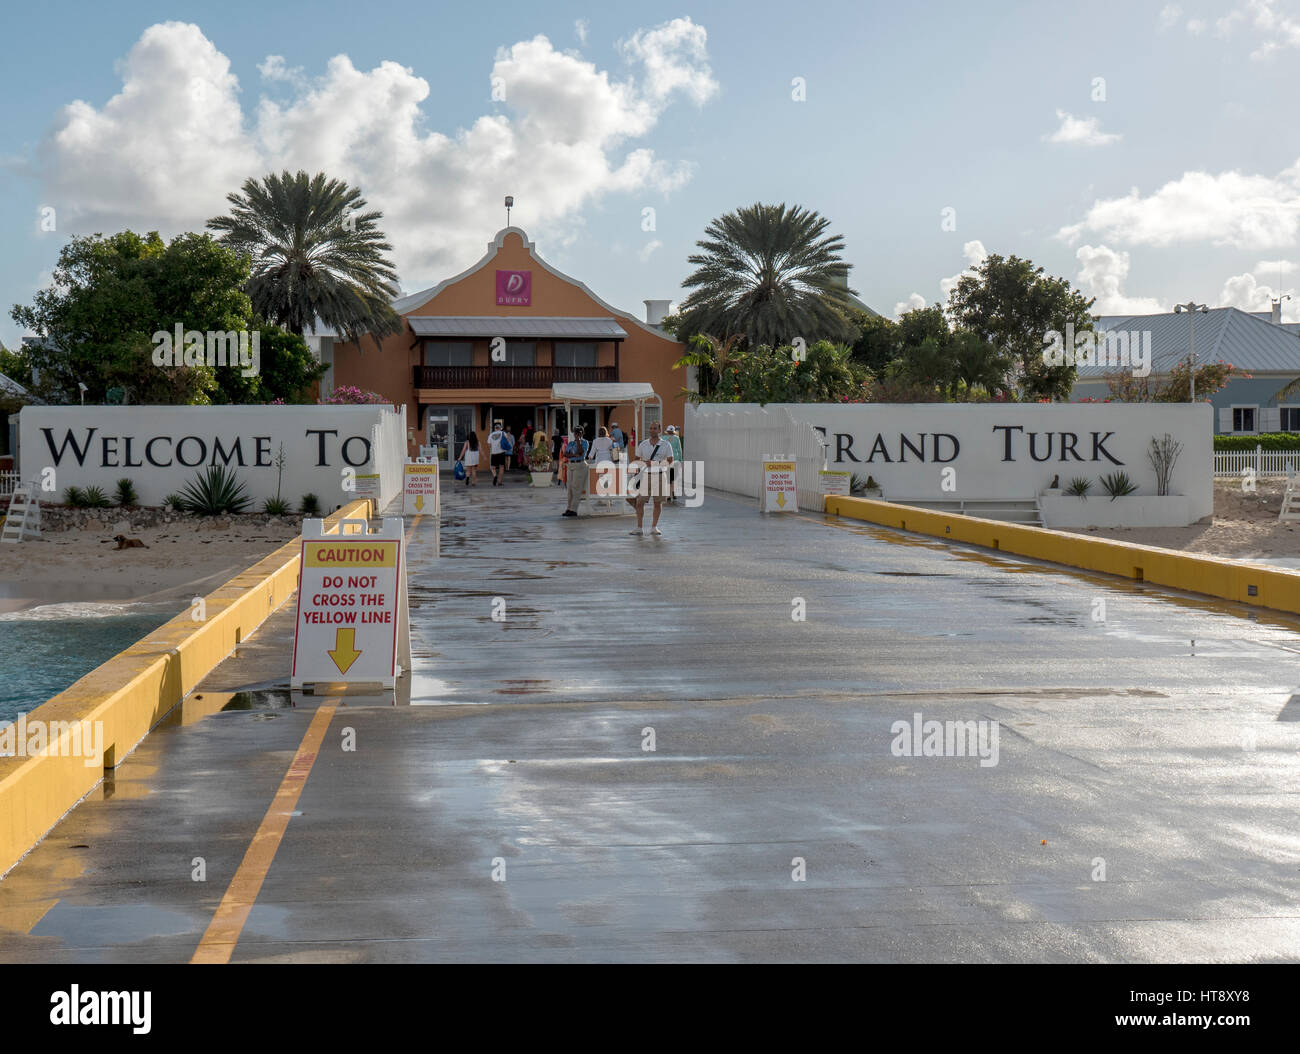 The Cruise Ship Centre Grand Turk Welcome Sign As Cruise Ship Passengers See The Sign From Disembarking Their Ship - Stock Image